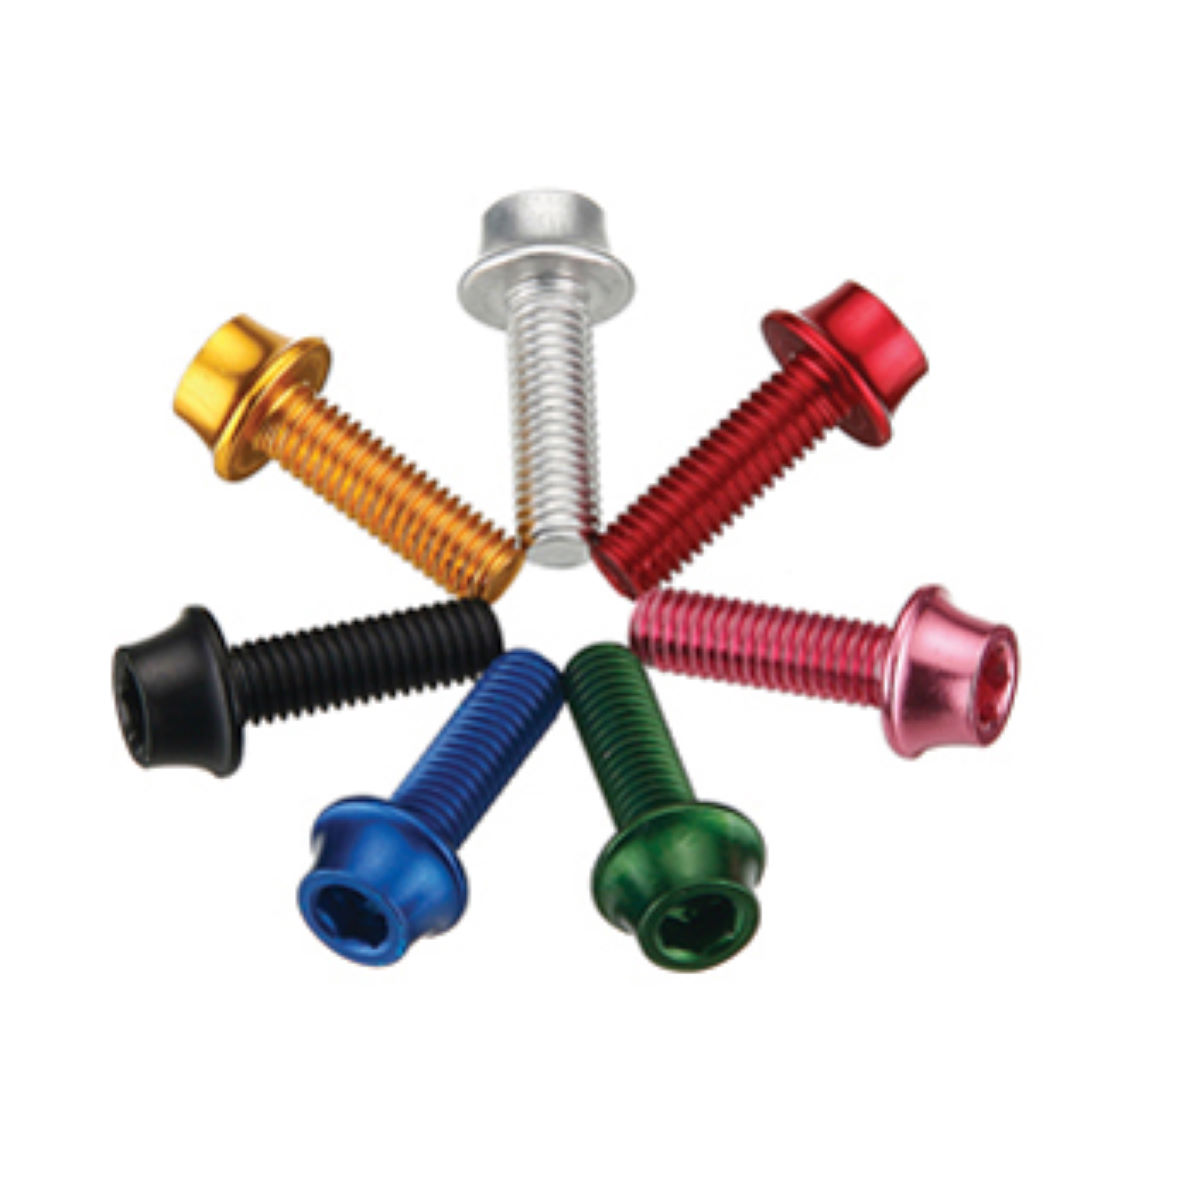 Token Tk-B516 Aluminium / alloy bolts